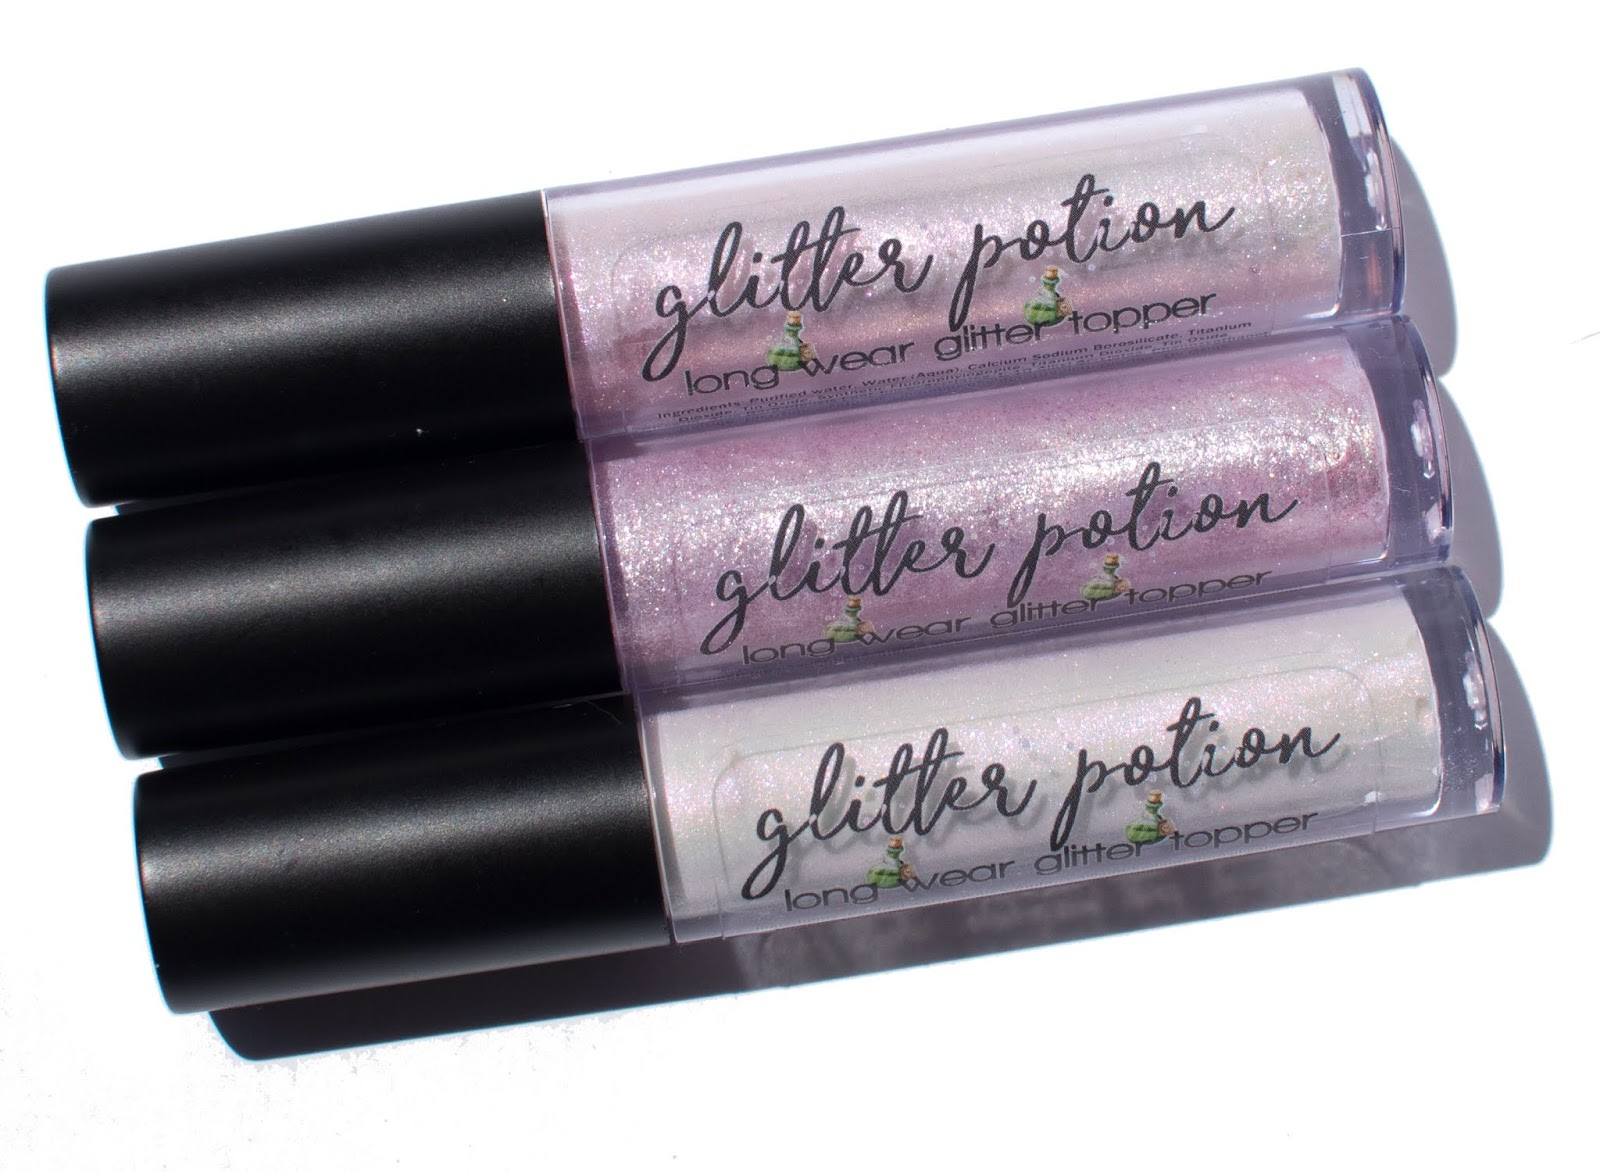 Darling Girl Glitter Potion Lip Toppers in Charmed, Divine, and Ritual